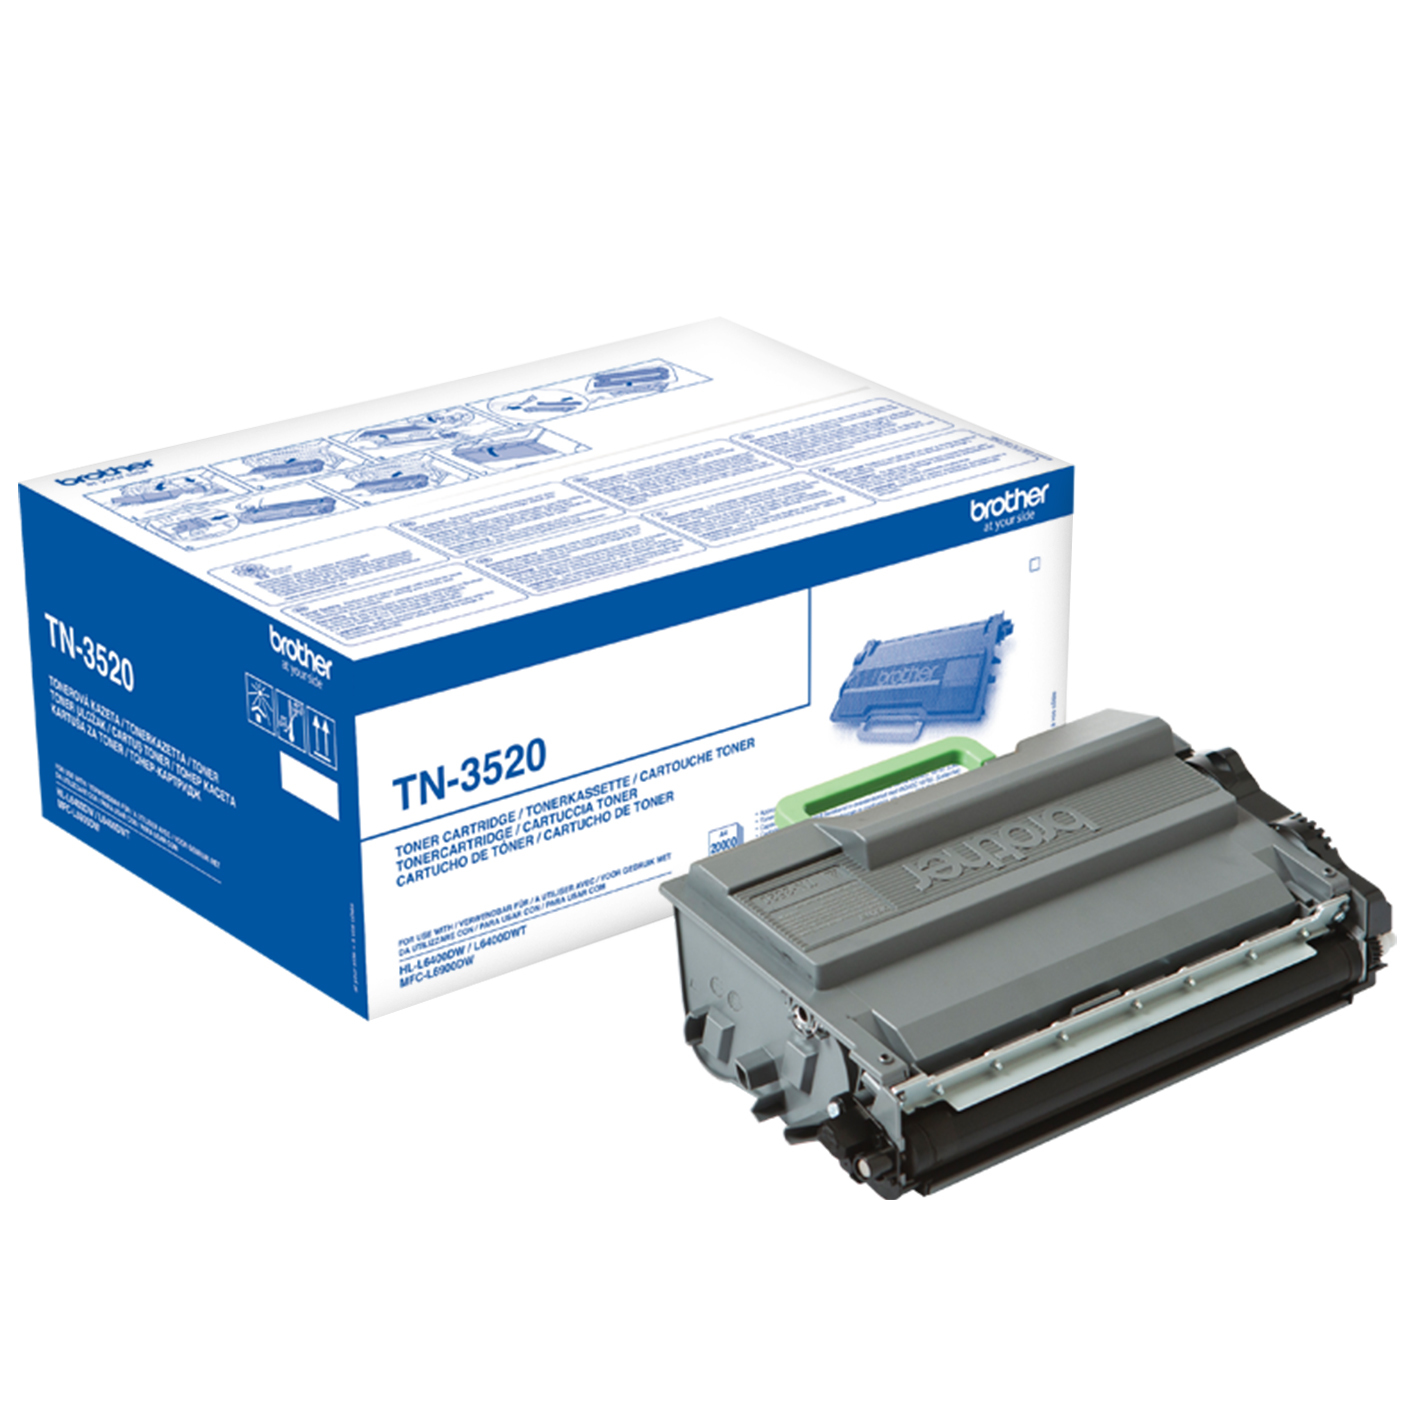 Compat Brother TN-3520 Toner Cart Blk 20k TN3520 - rem01